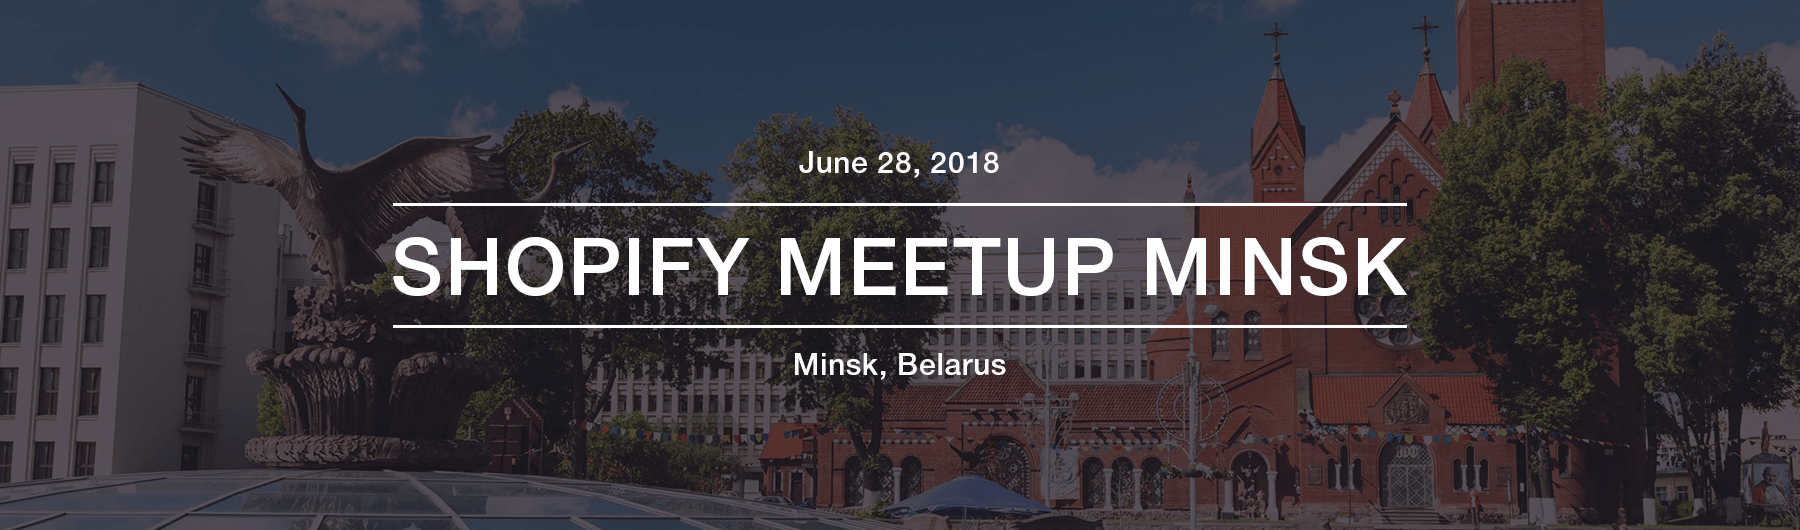 Shopify Meetup Minsk